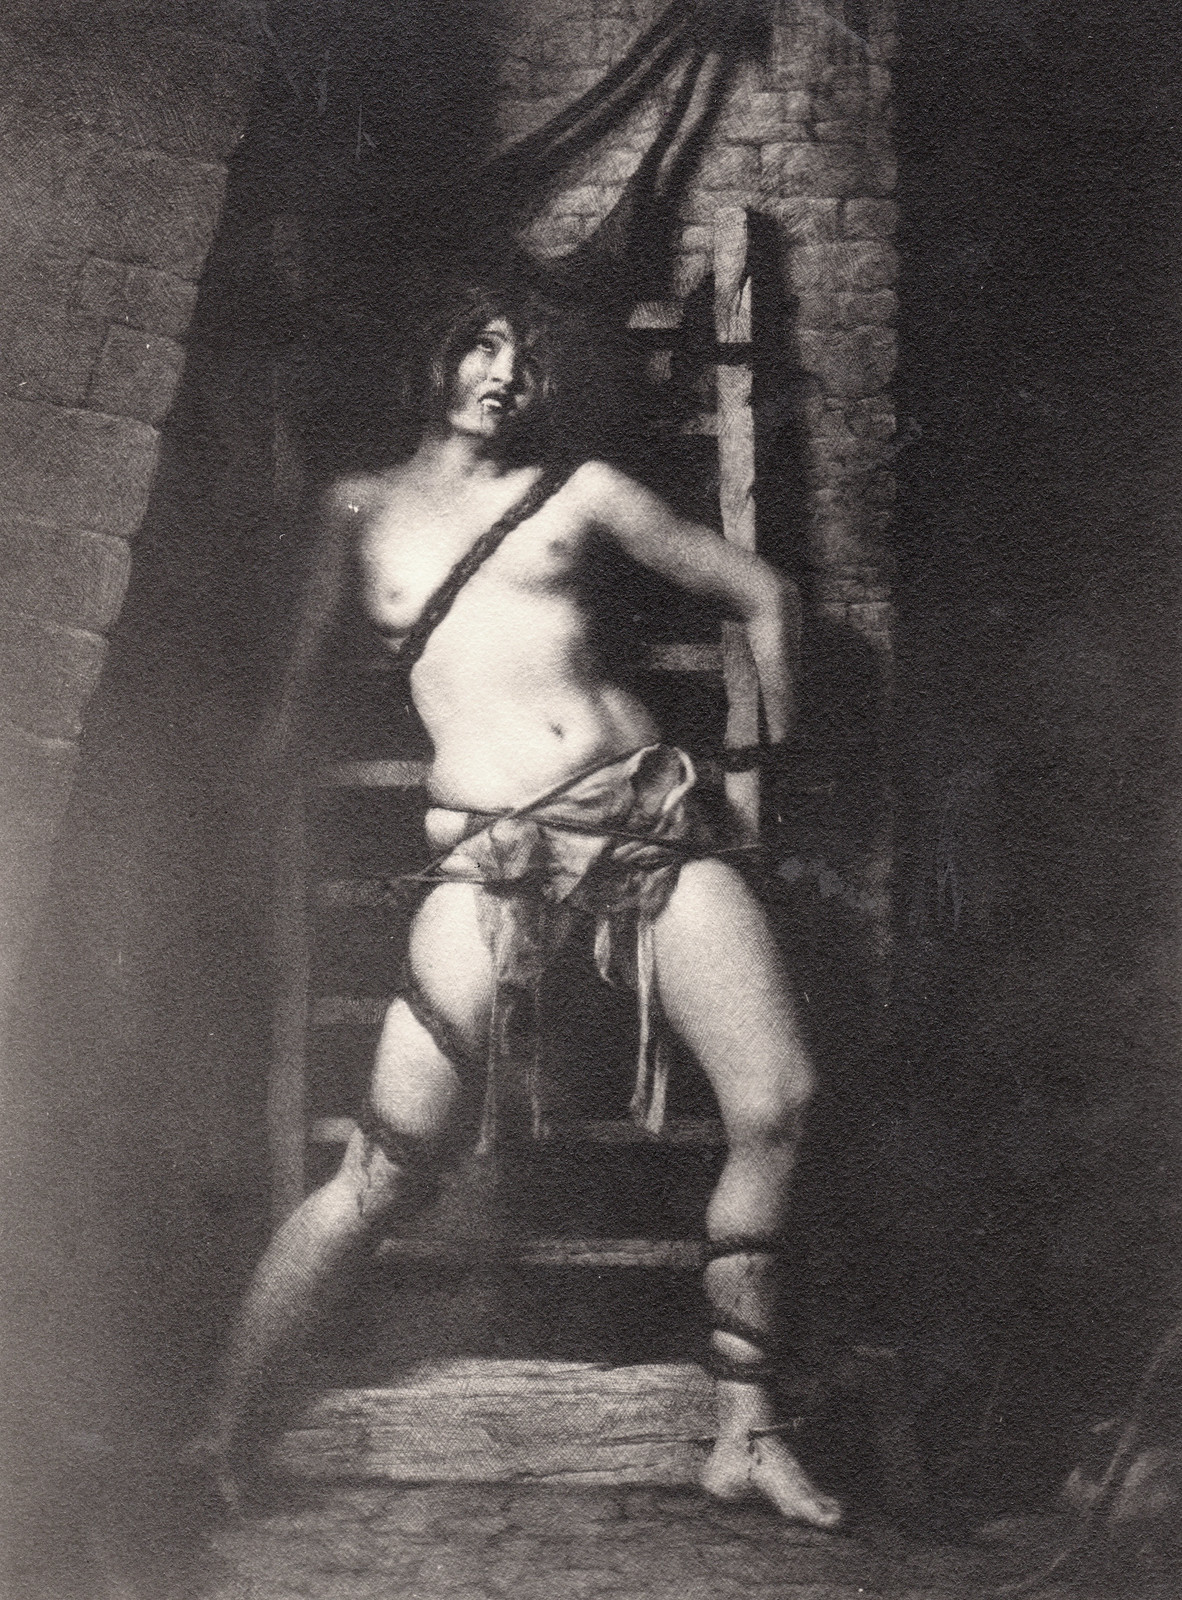 William Mortensen - A Spider Torture